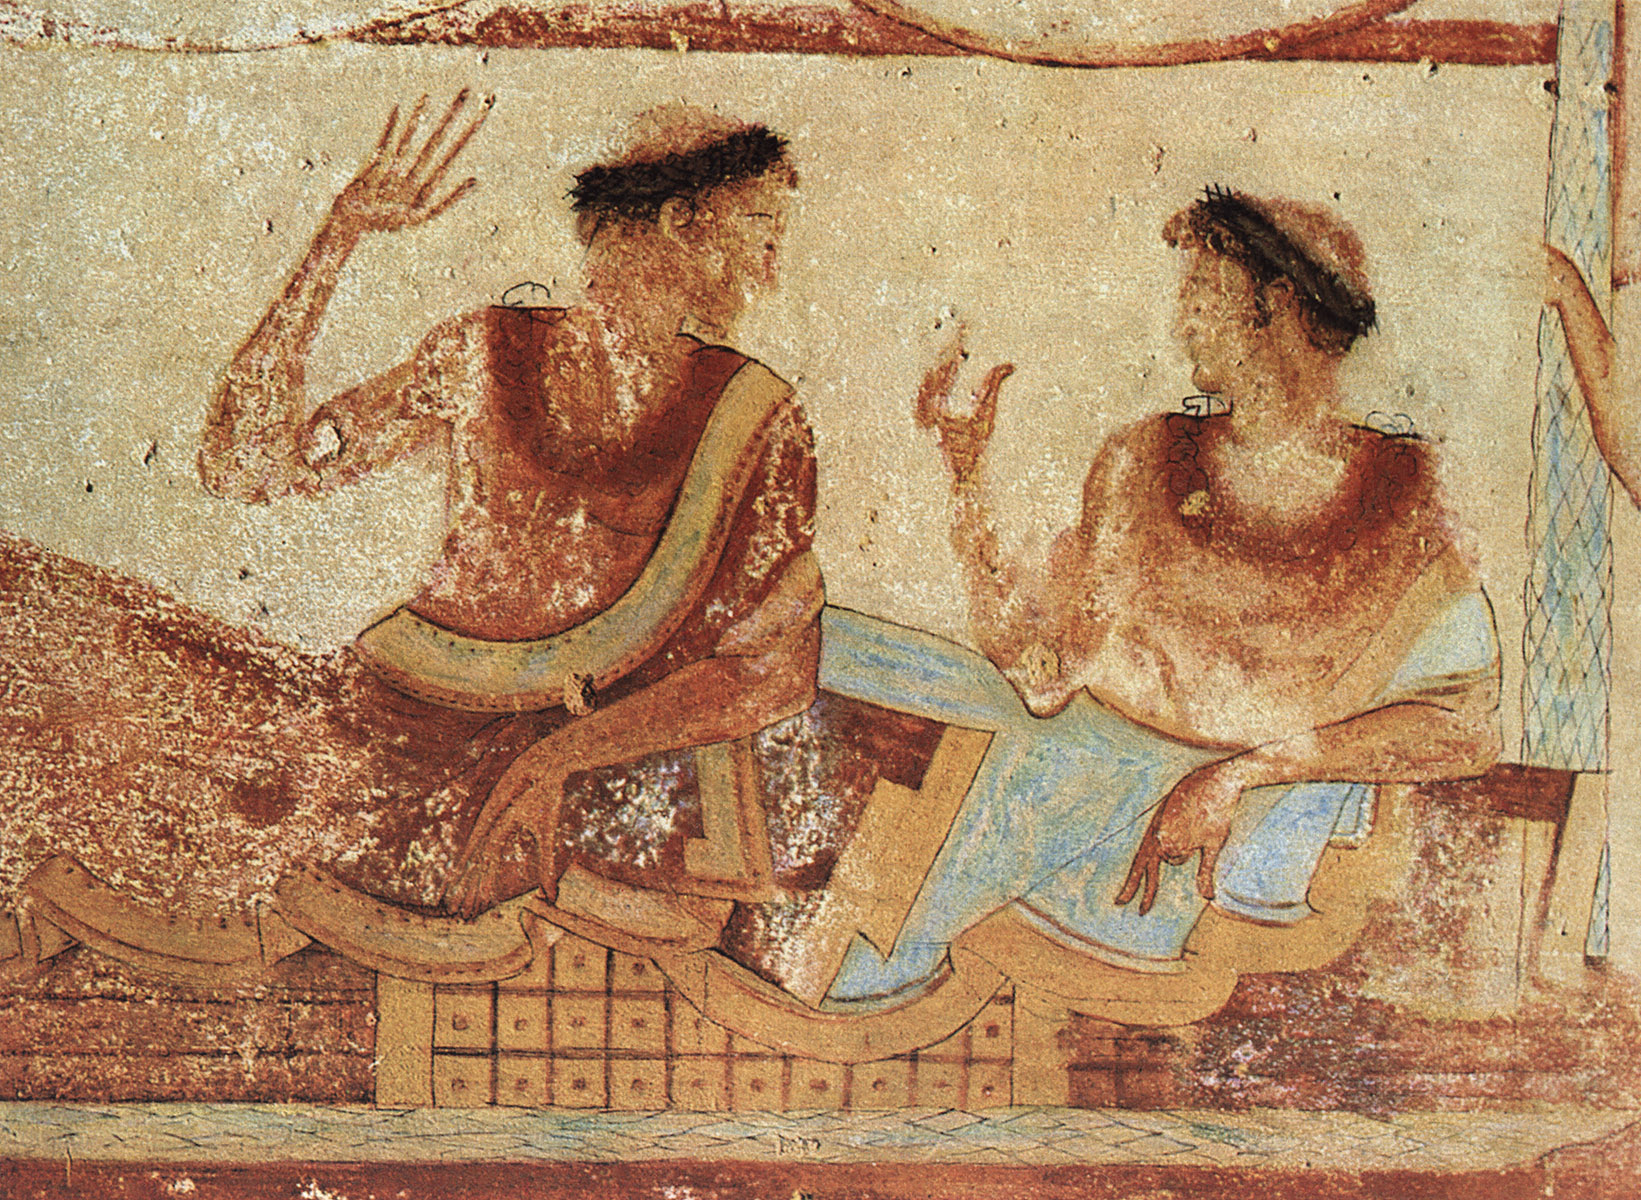 Scene of feast. 5th century BCE. Tarquinia, Tomb of the Funerary Bed